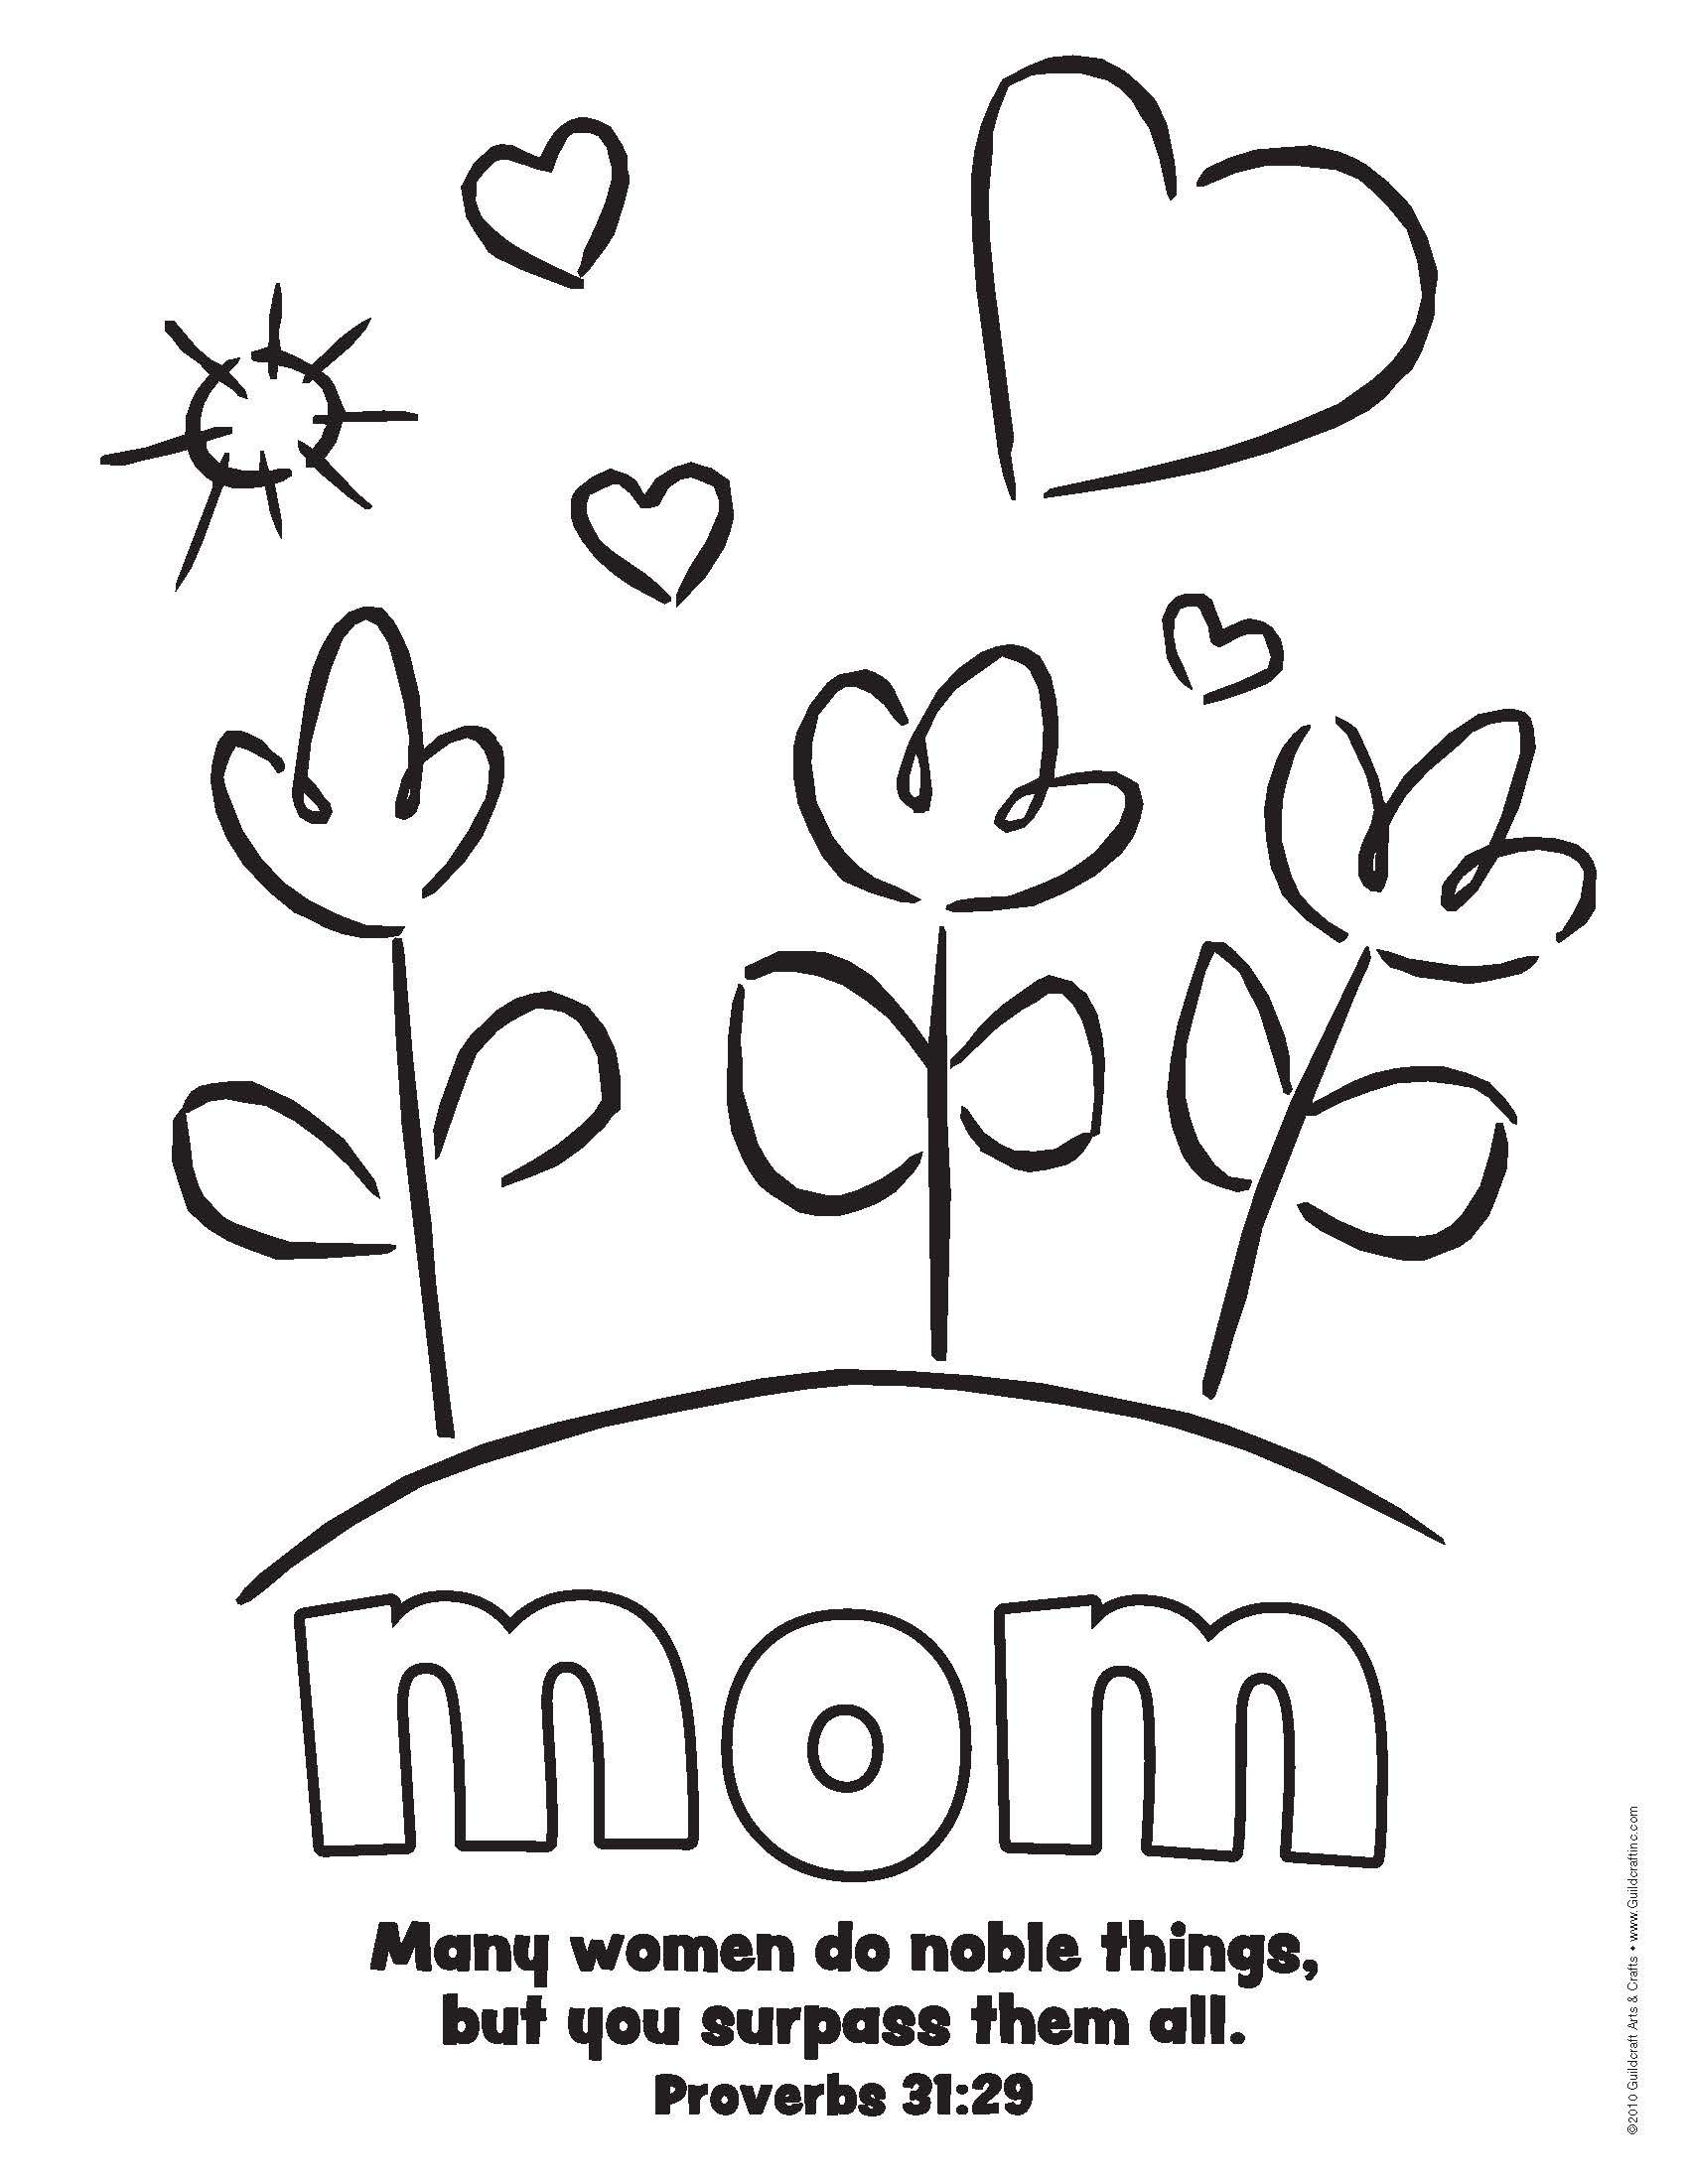 Simple mother's day printable with Prov 31 Bible verse